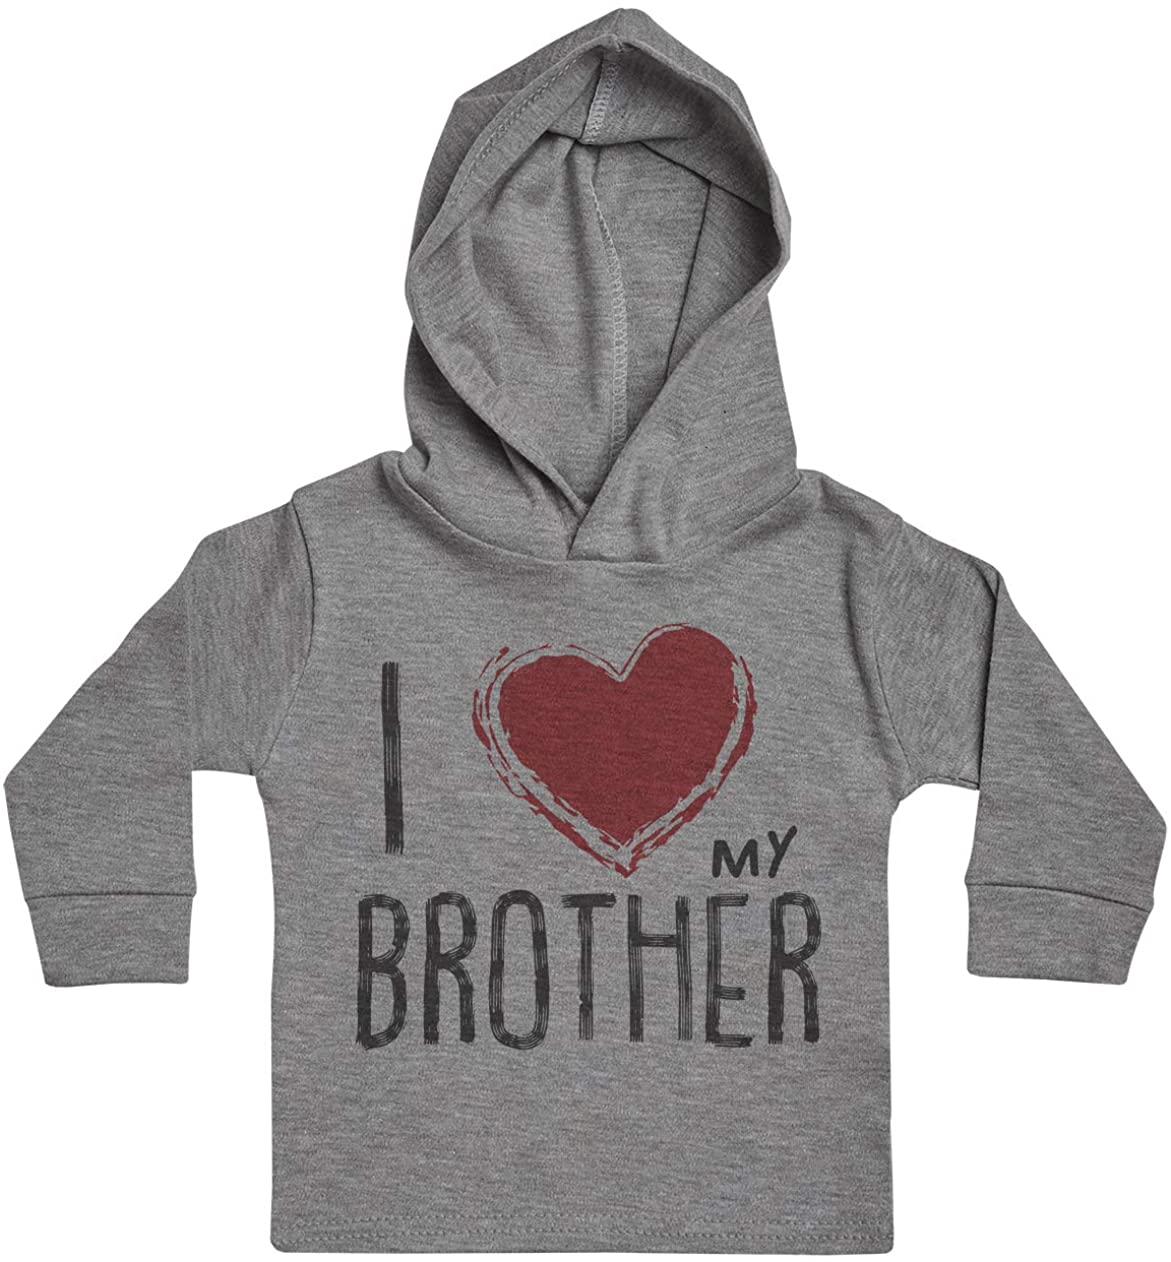 I Love My Brother Red Heart Baby Boy Hoody, Baby Girl Hoody, Baby Hoody, Baby Clothing, Baby Gift